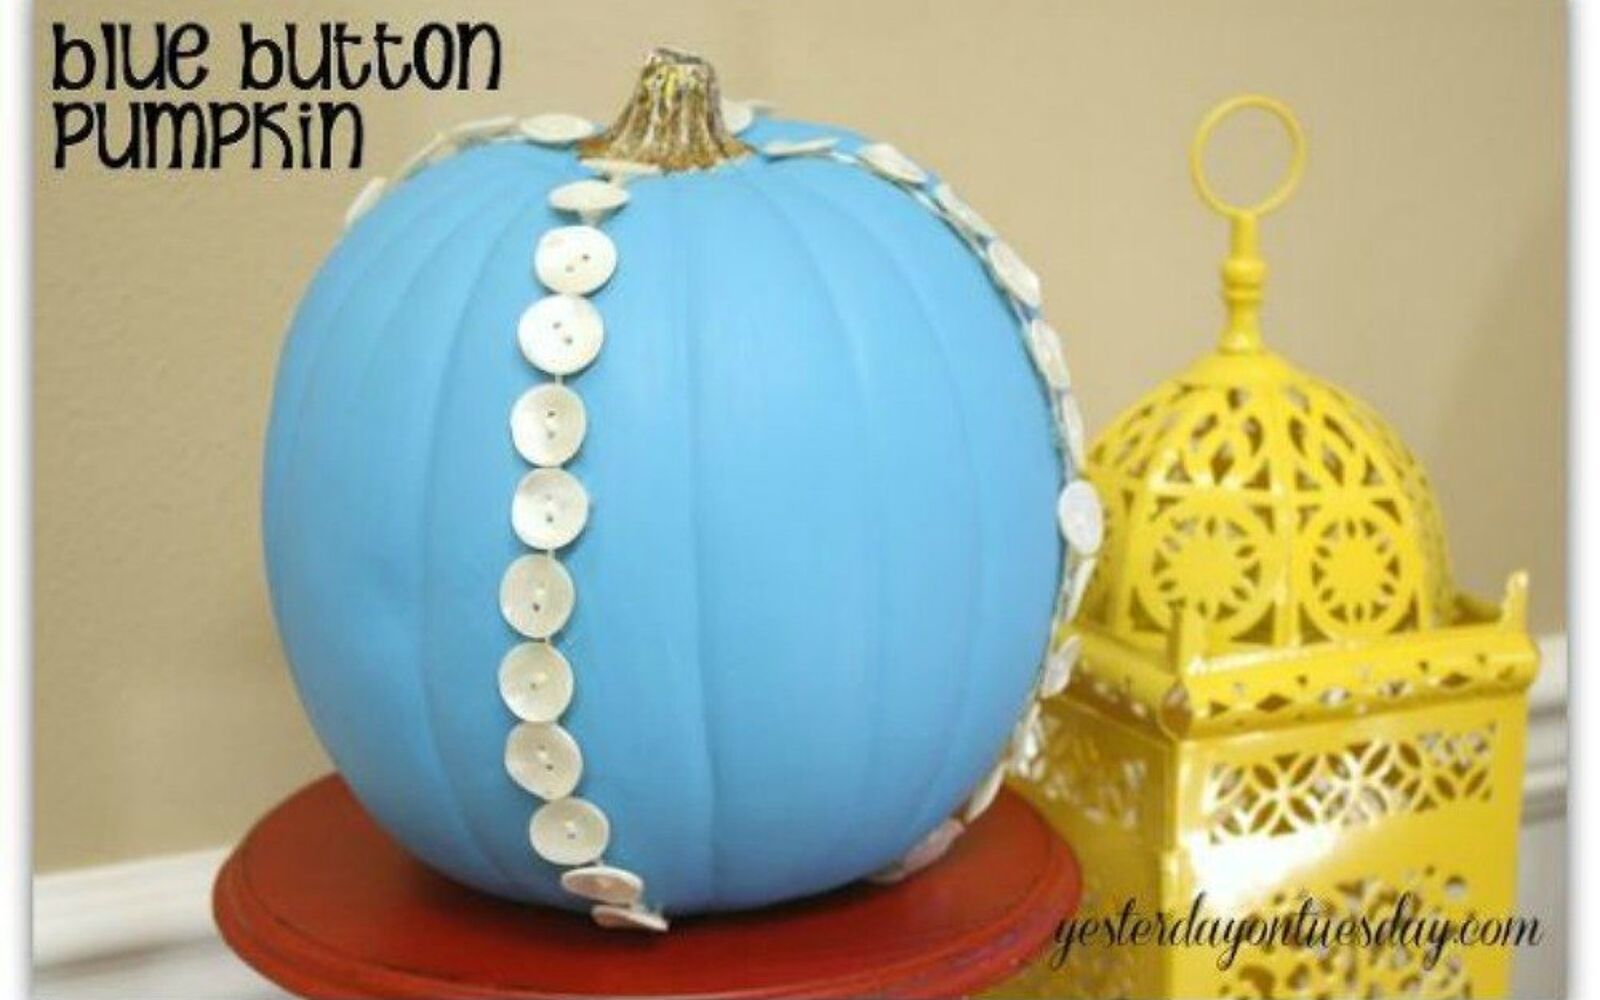 s 15 quick and easy gift ideas using buttons, Glue them onto a pretty pumpkin